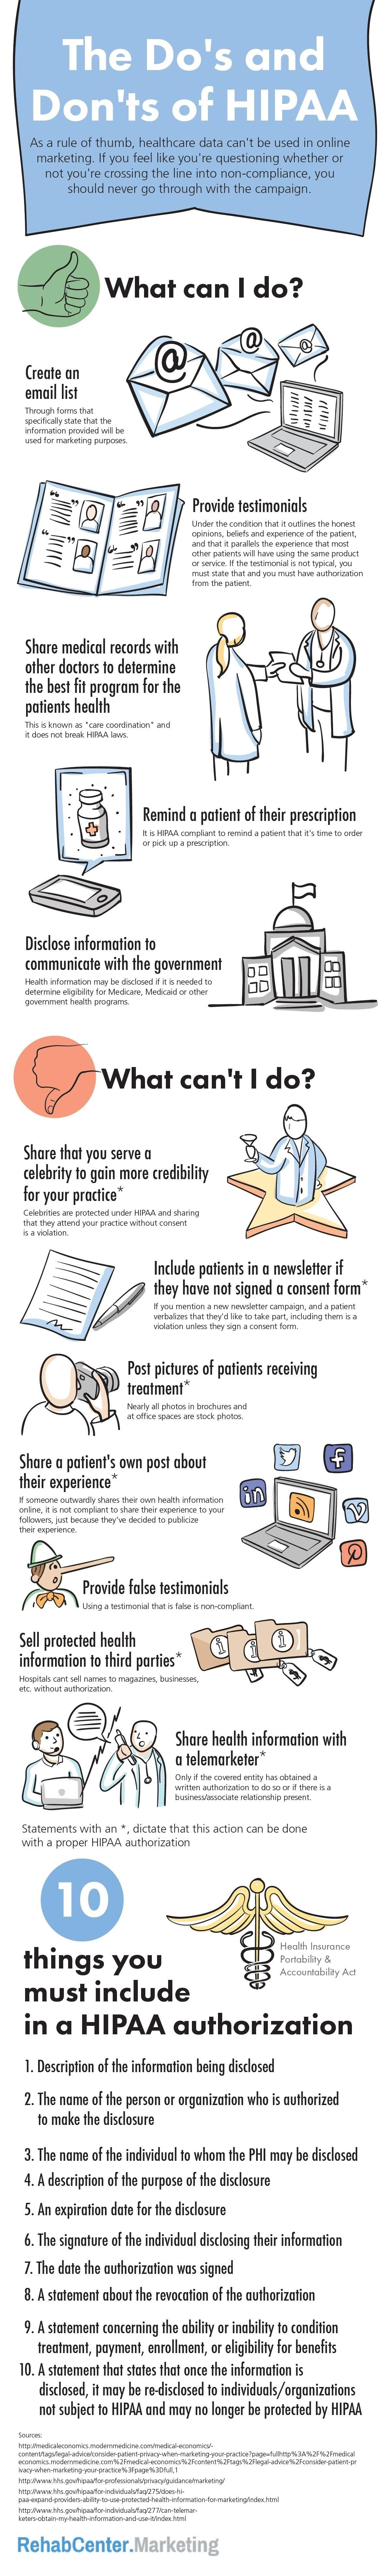 The Do's and Don'ts of HIPAA #infographic